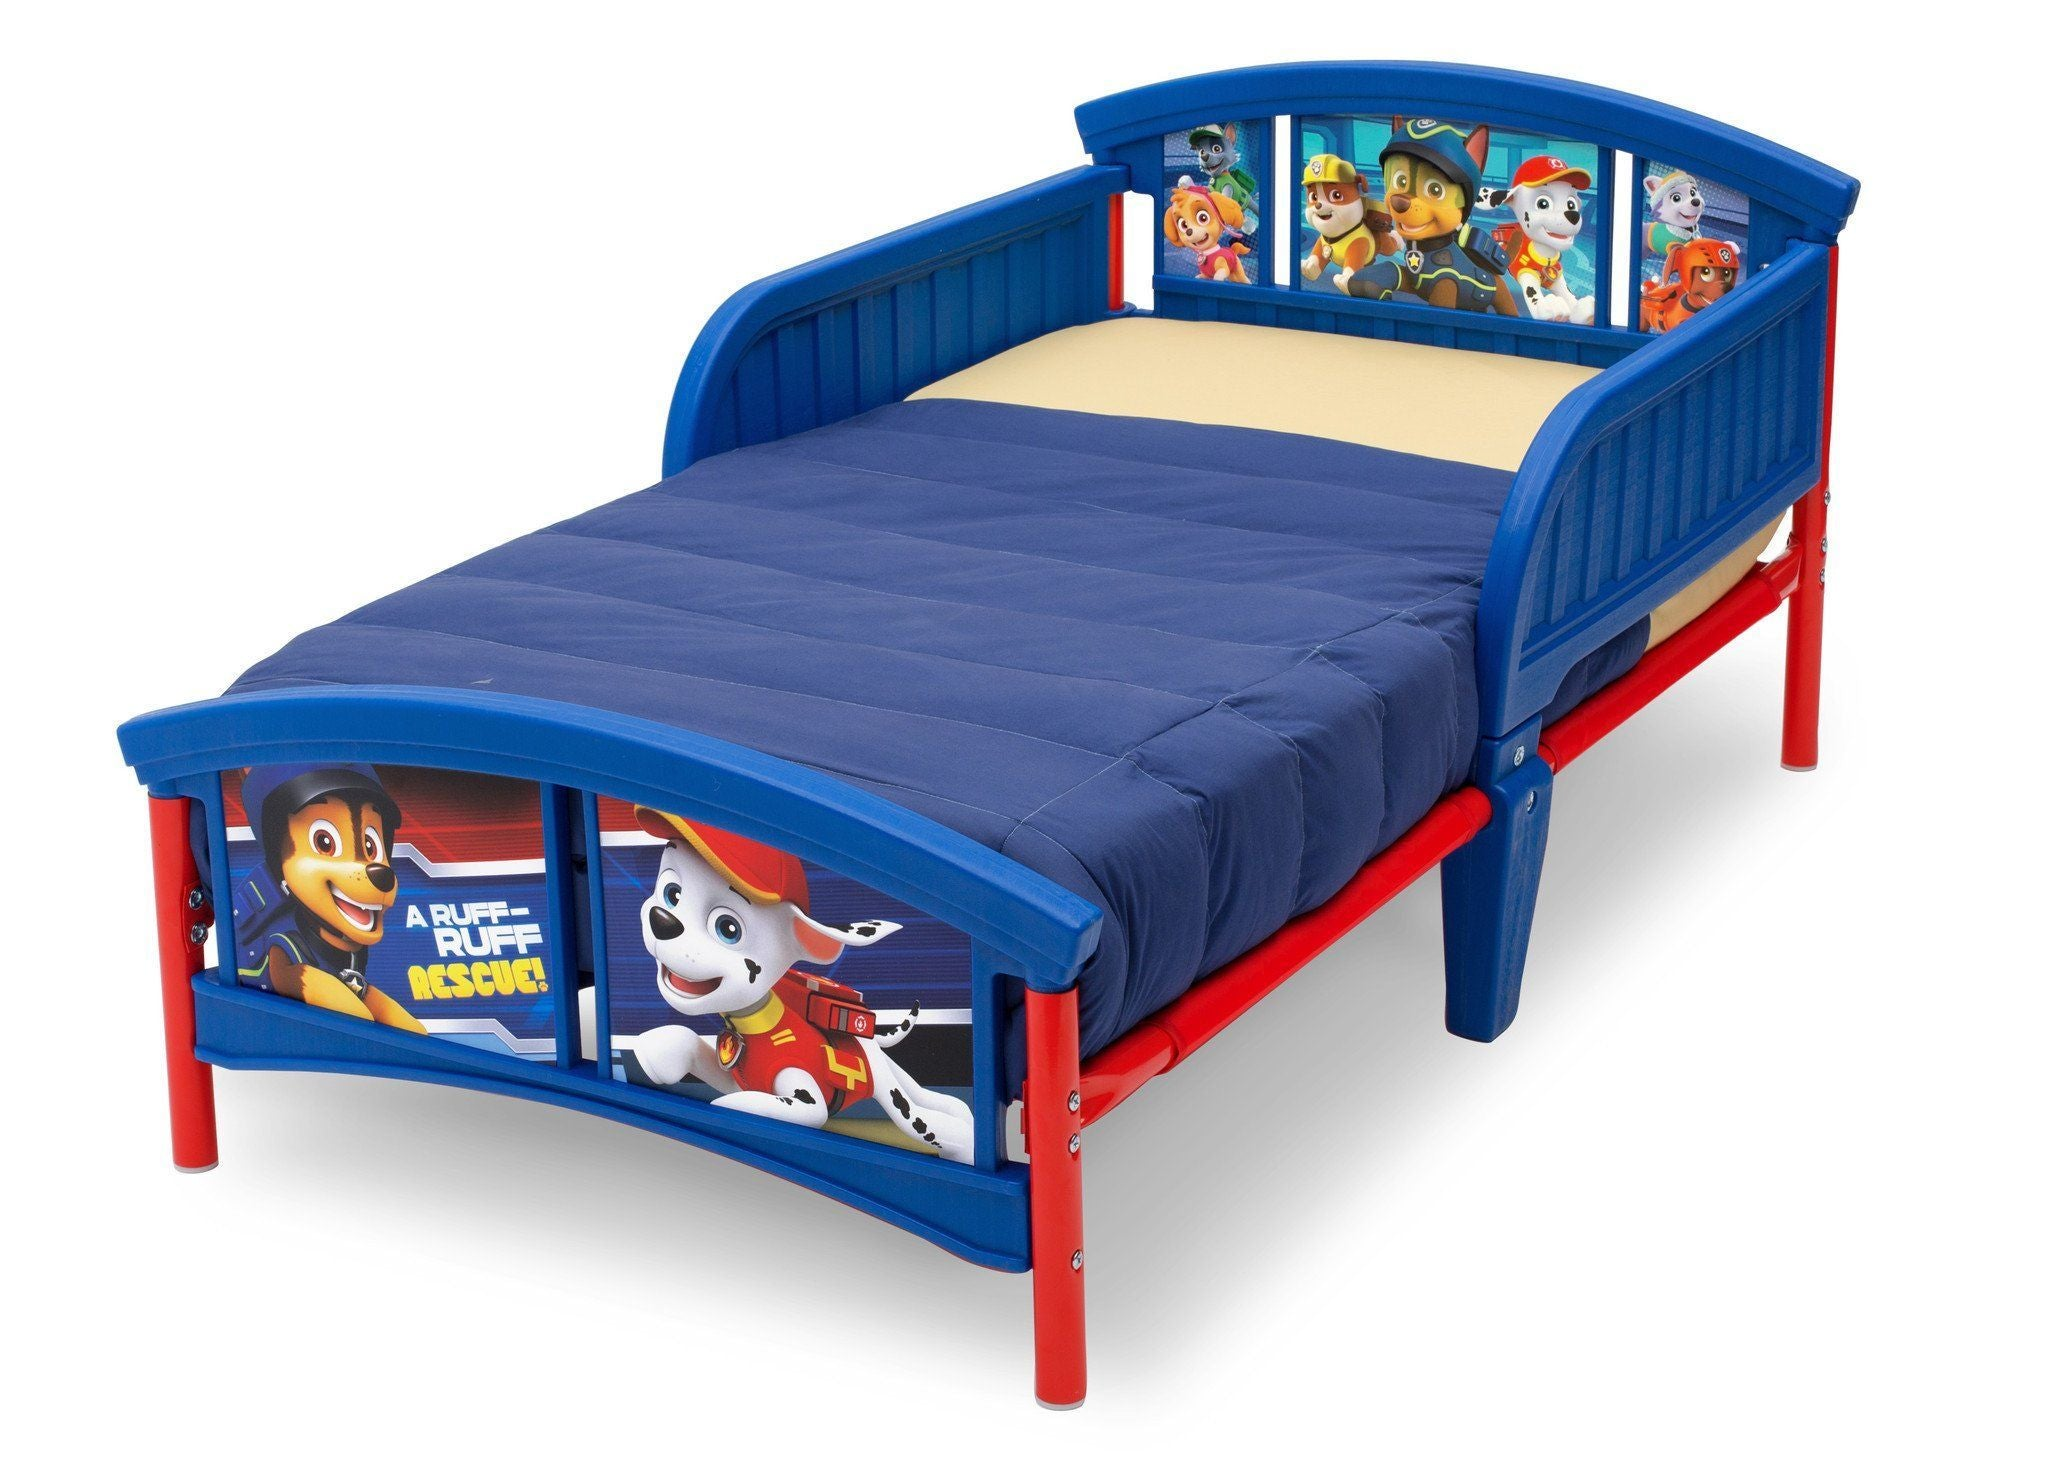 Delta Children PAW Patrol Paw Patrol (1121) Plastic Toddler Bed Left View a4a